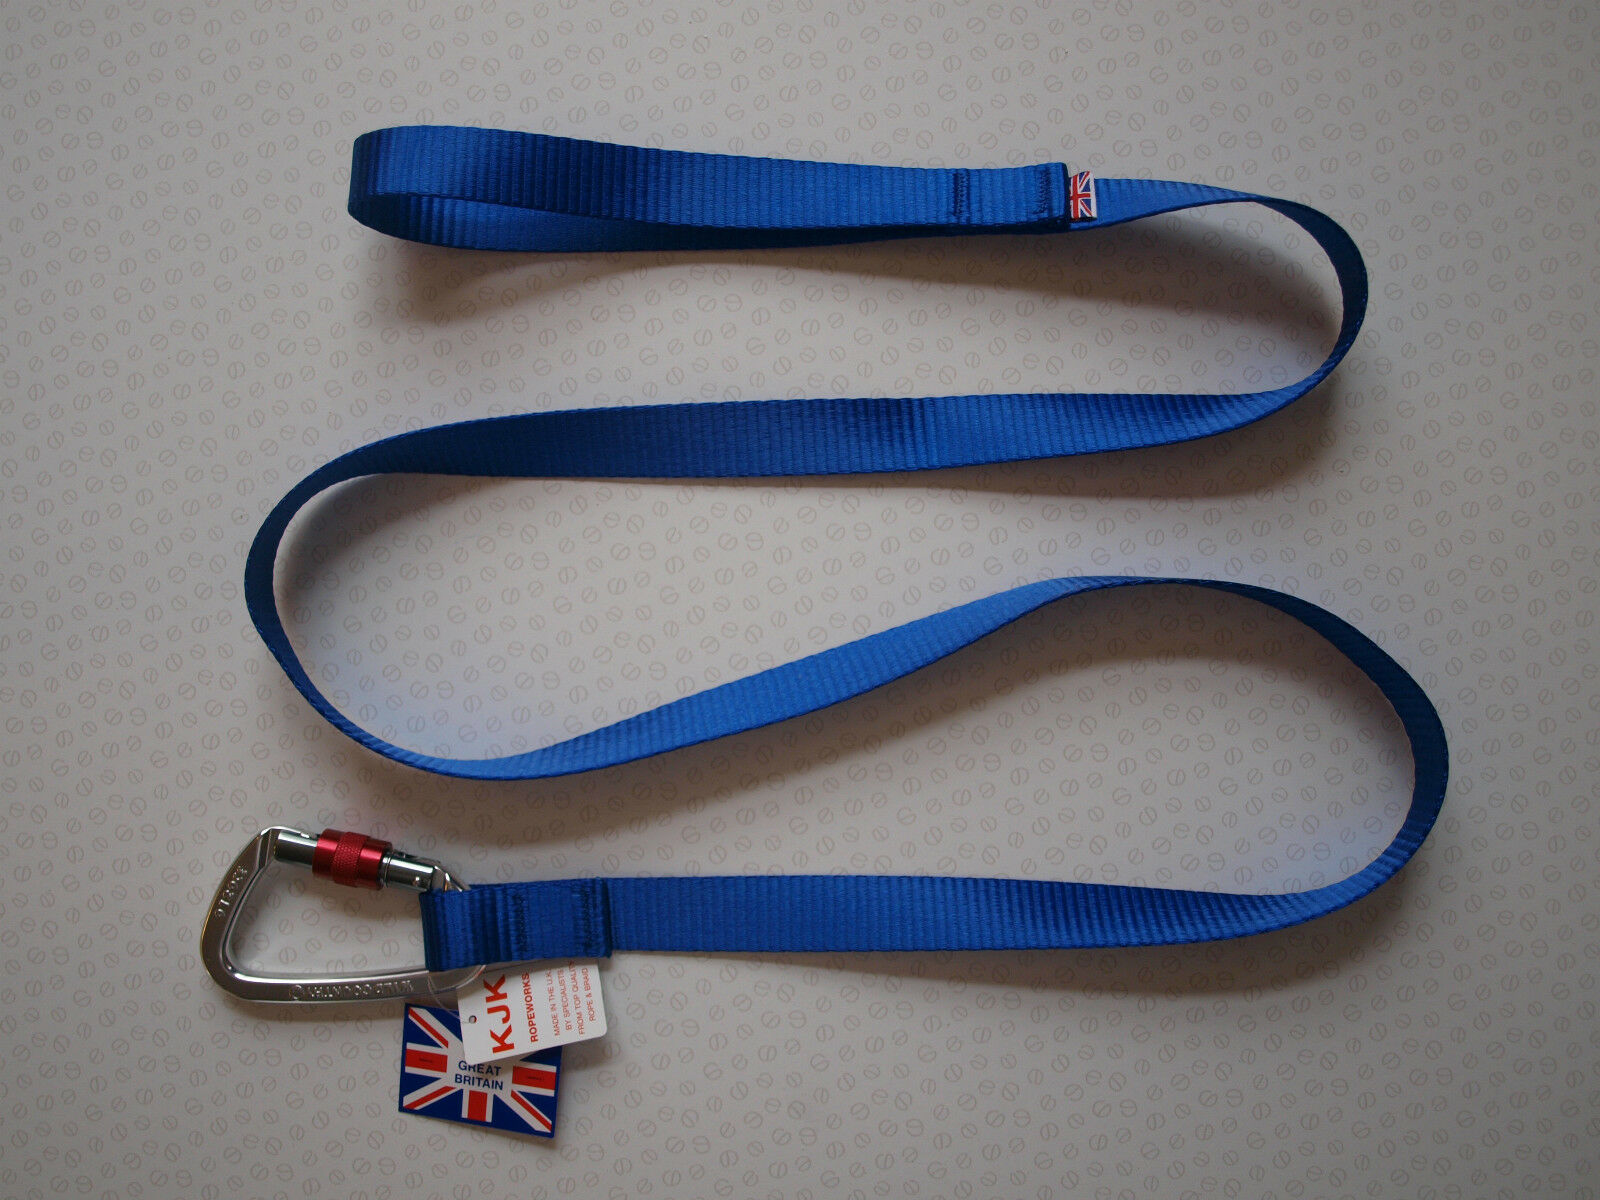 KJK ALPINE CLIP DOG LEAD,25mm - 1.7 metres LONG. MADE IN UK,FREE POSTAGE.blueE.